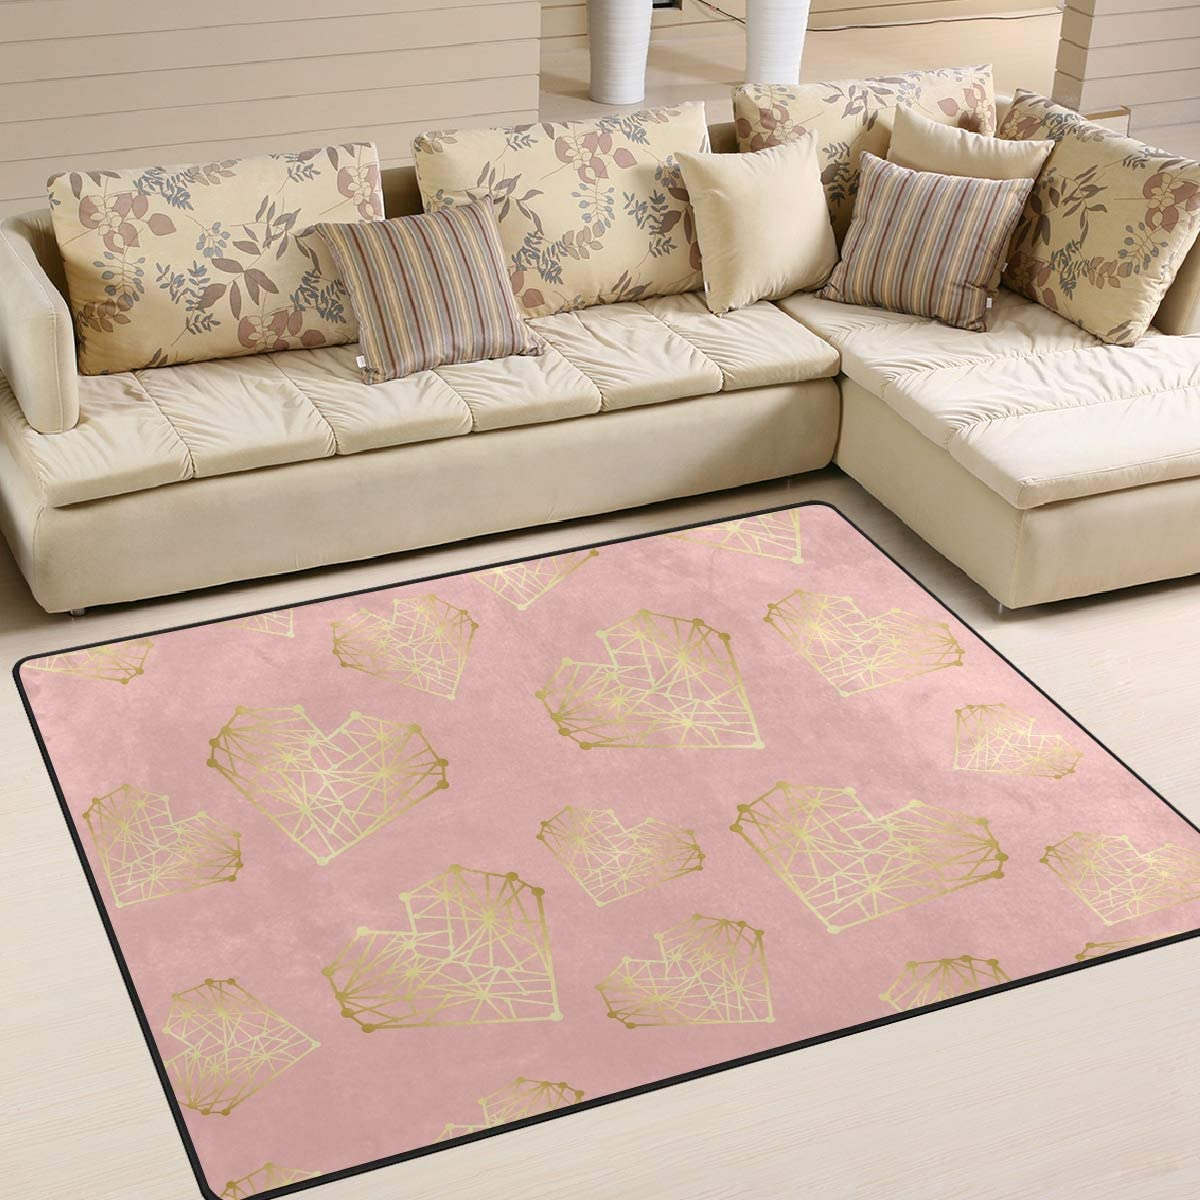 AGONA Pink Gold Hearts Area Rug famous Max 80% OFF Rugs 5x7 Indoor Large Soft